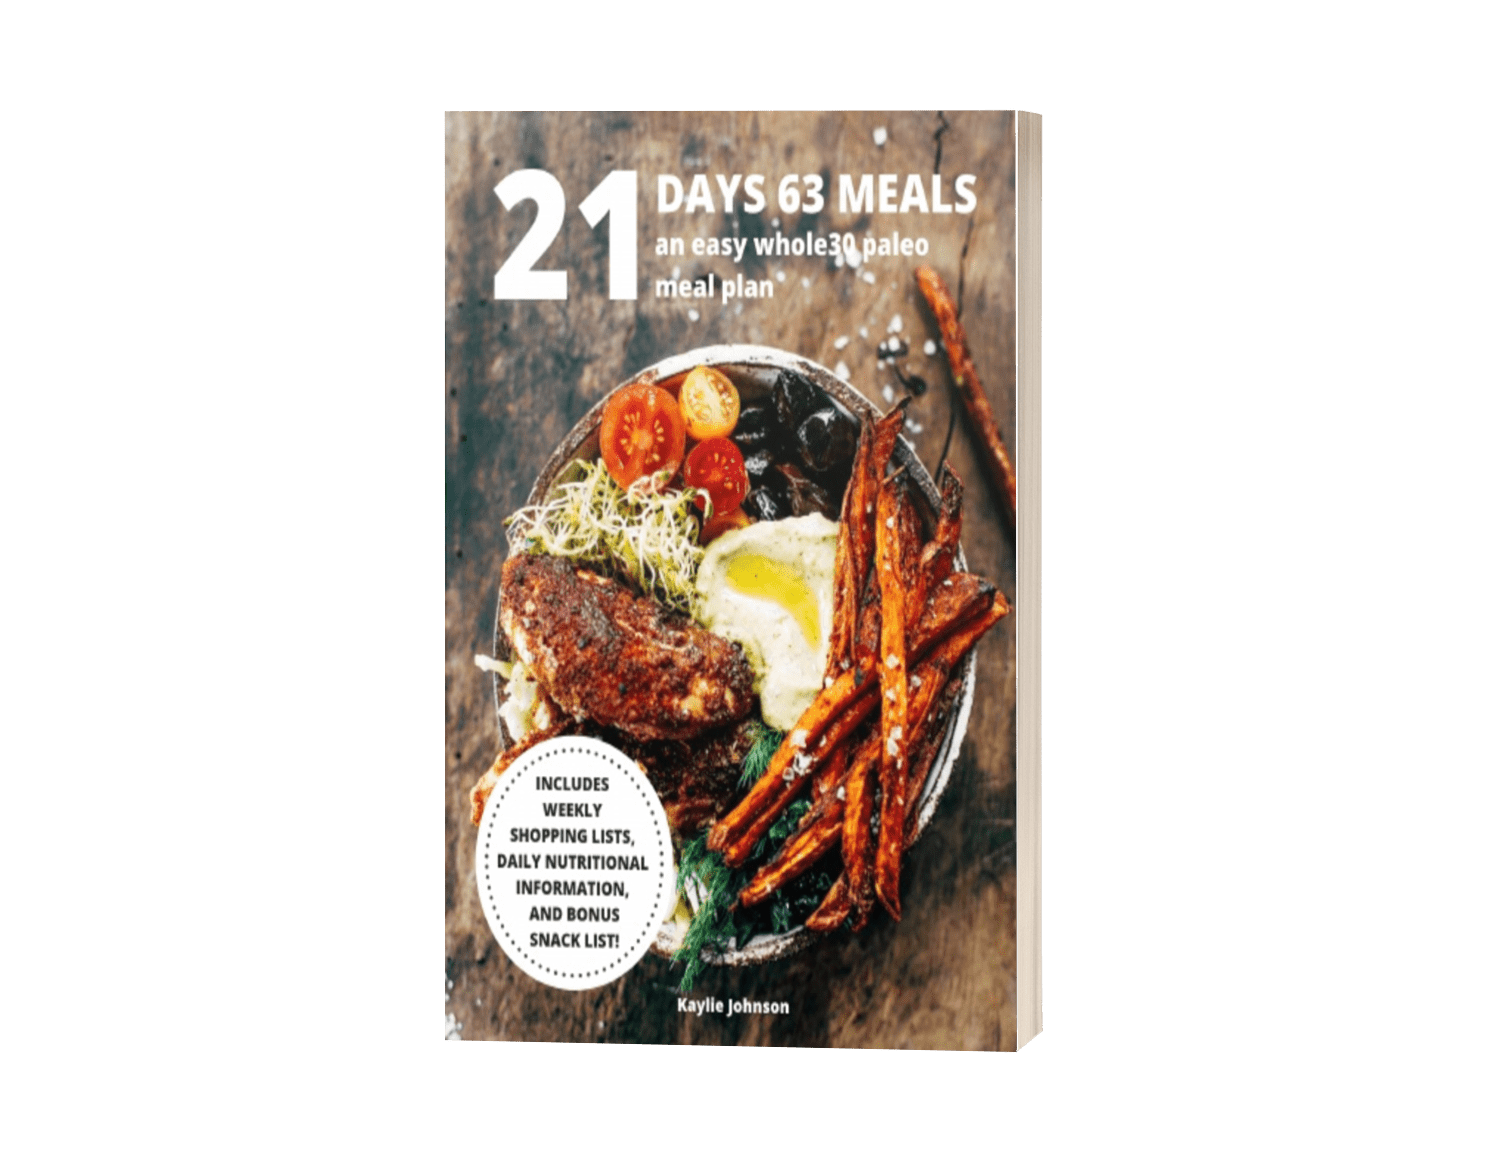 21 Meals 63 Days: An Easy Paleo Whole30 Meal Plan